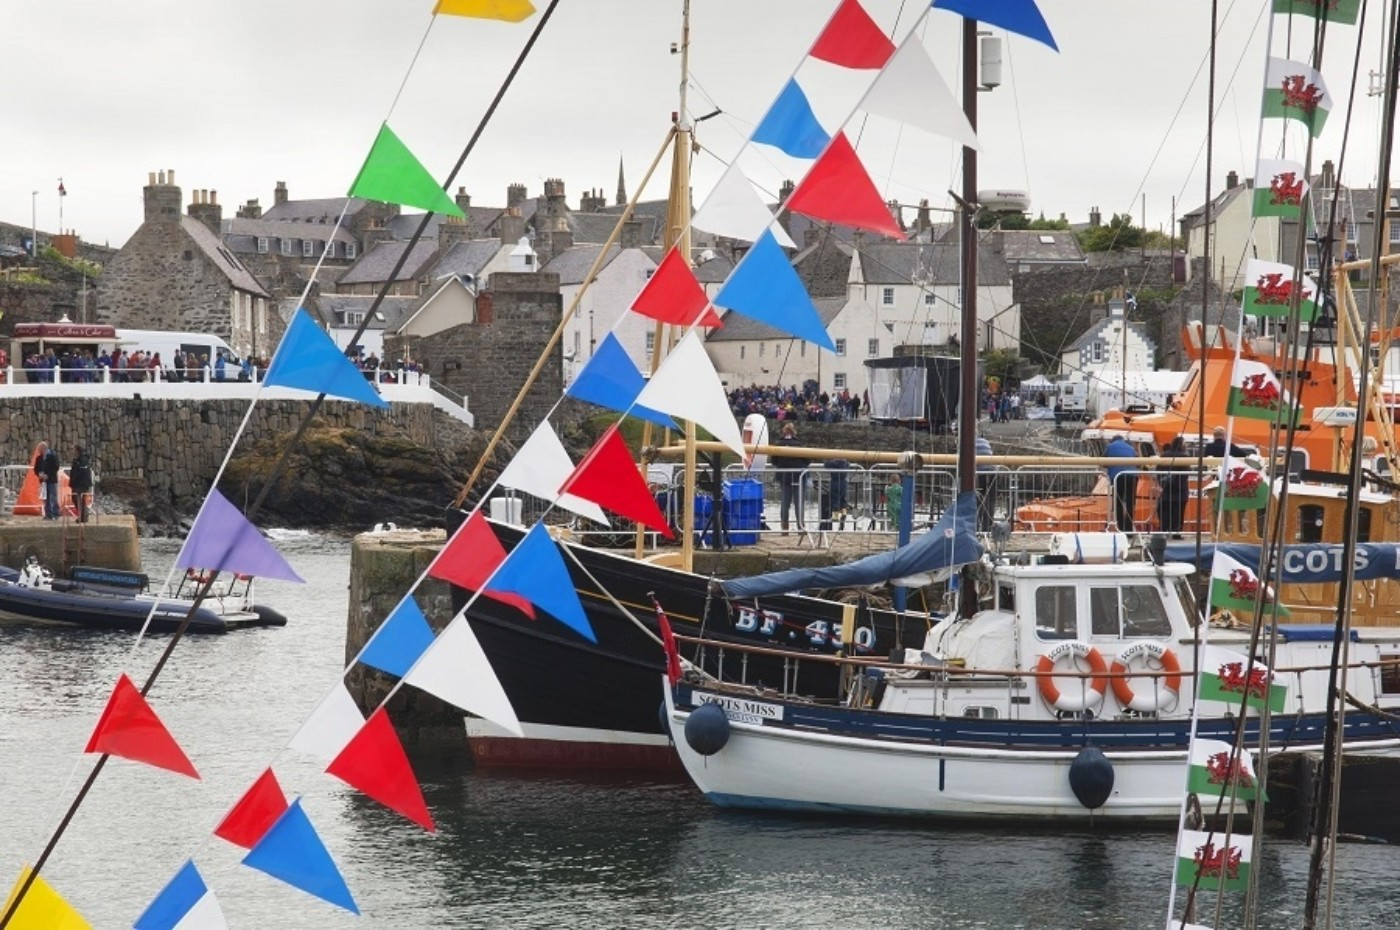 Scottish Traditional Boat Festival - Aberdeen Festivals